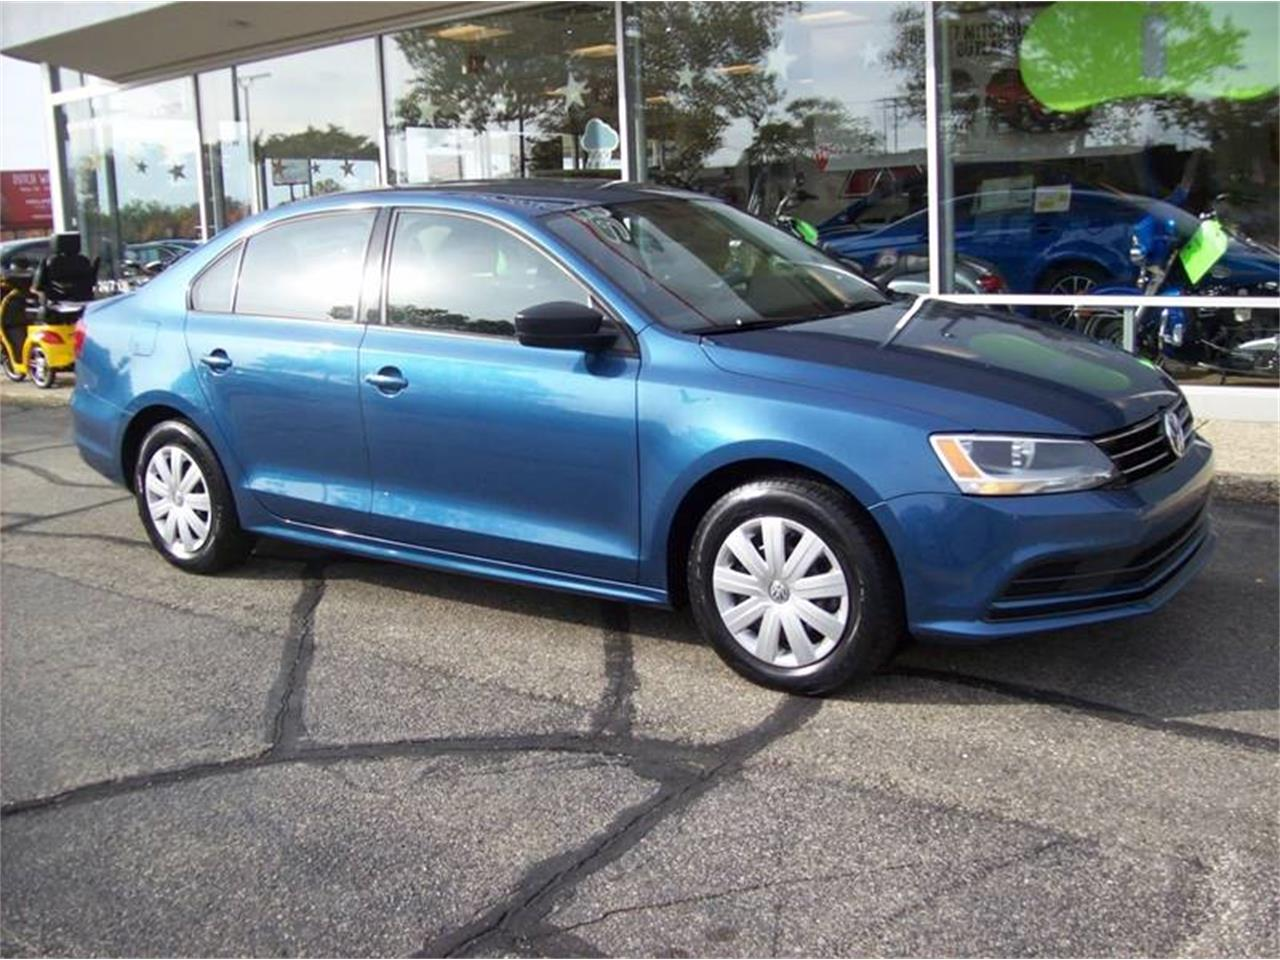 Large Picture of '15 Volkswagen Jetta located in Michigan - $10,995.00 Offered by Verhage Mitsubishi - M6XO